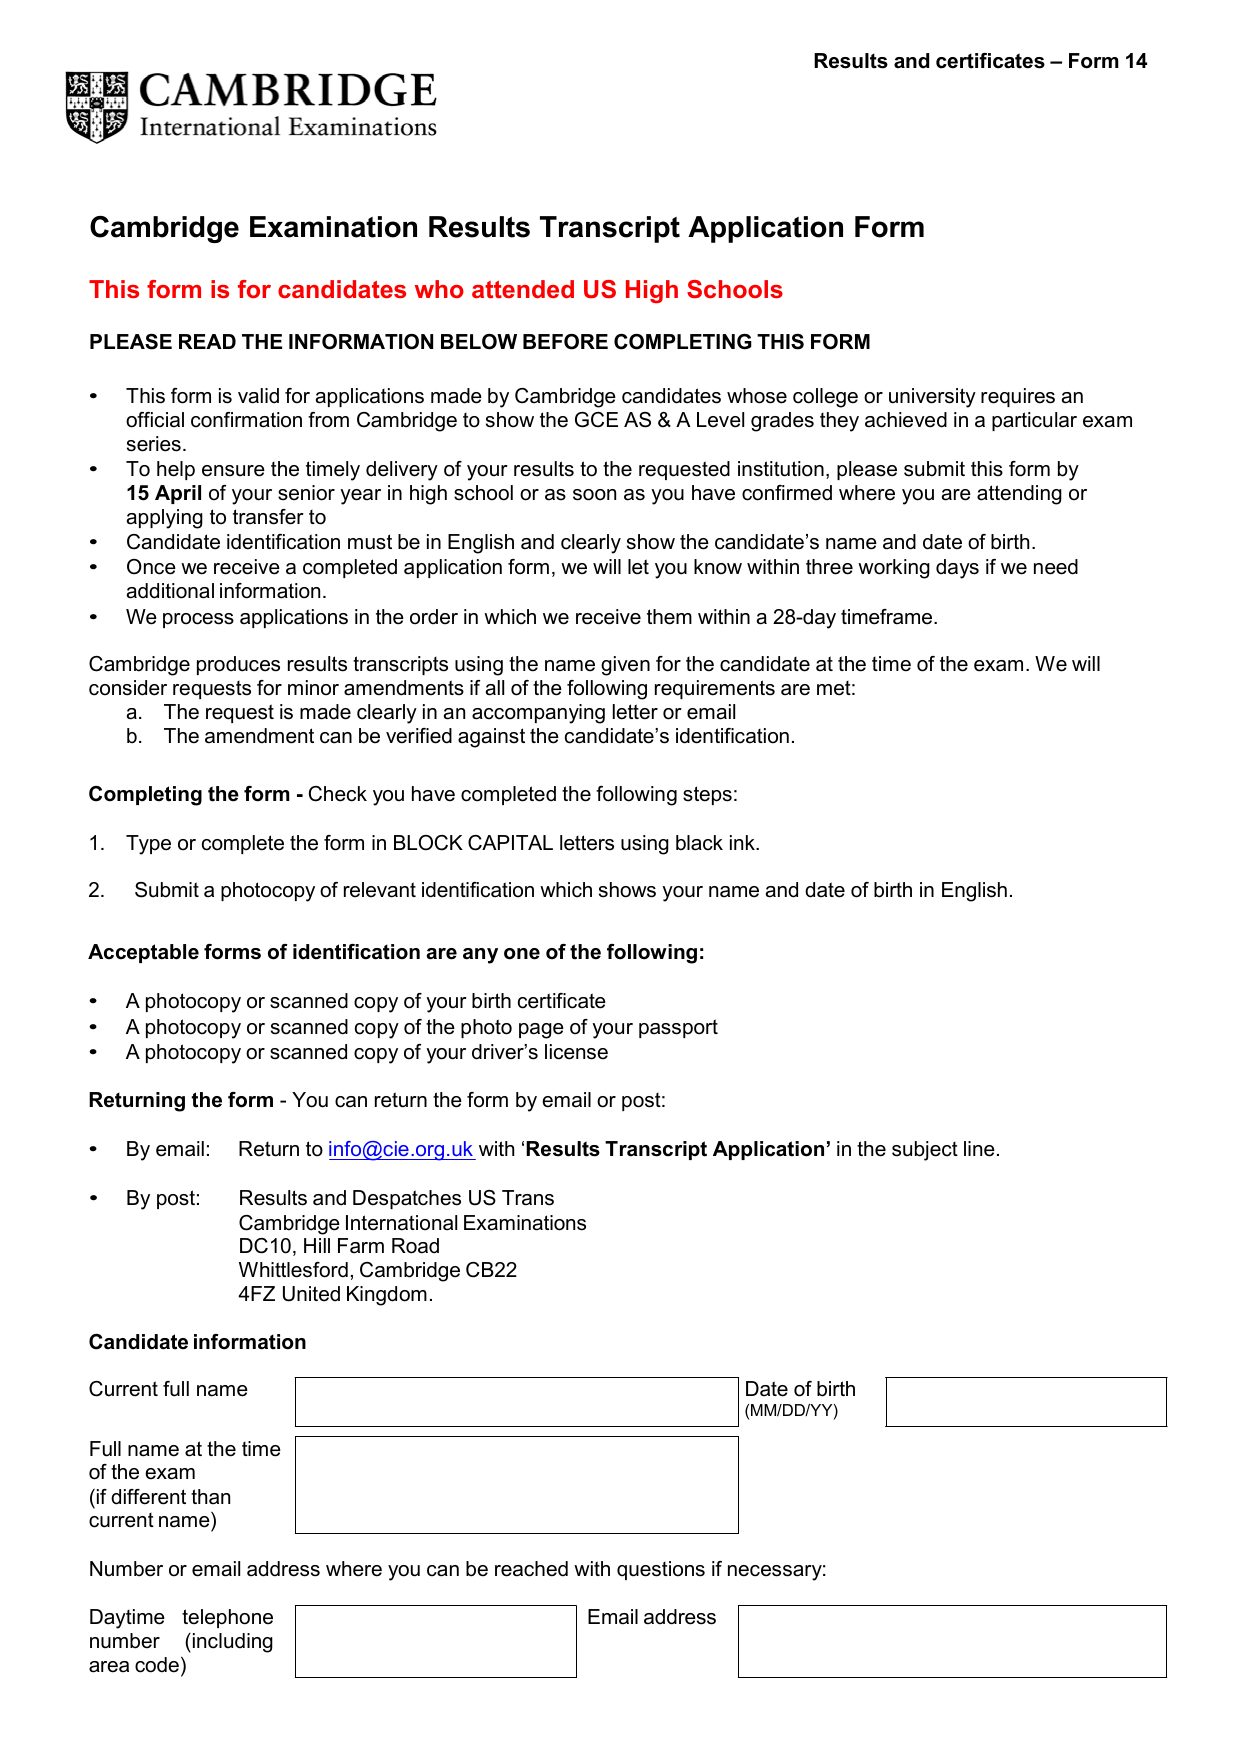 cambridge examination results transcript application form